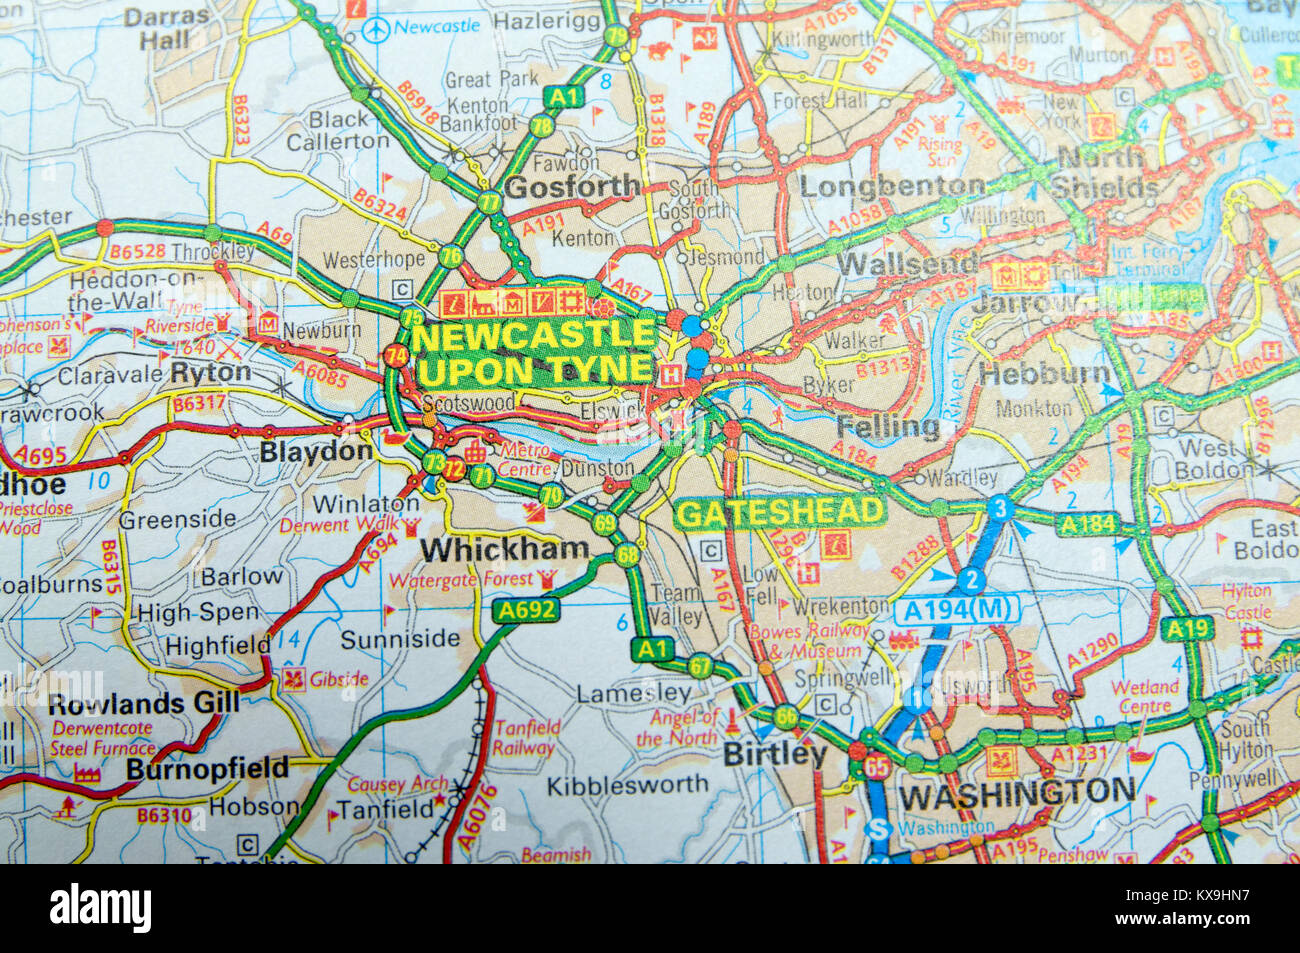 Map Of Uk Newcastle.Newcastle Upon Tyne Map Stock Photos Newcastle Upon Tyne Map Stock